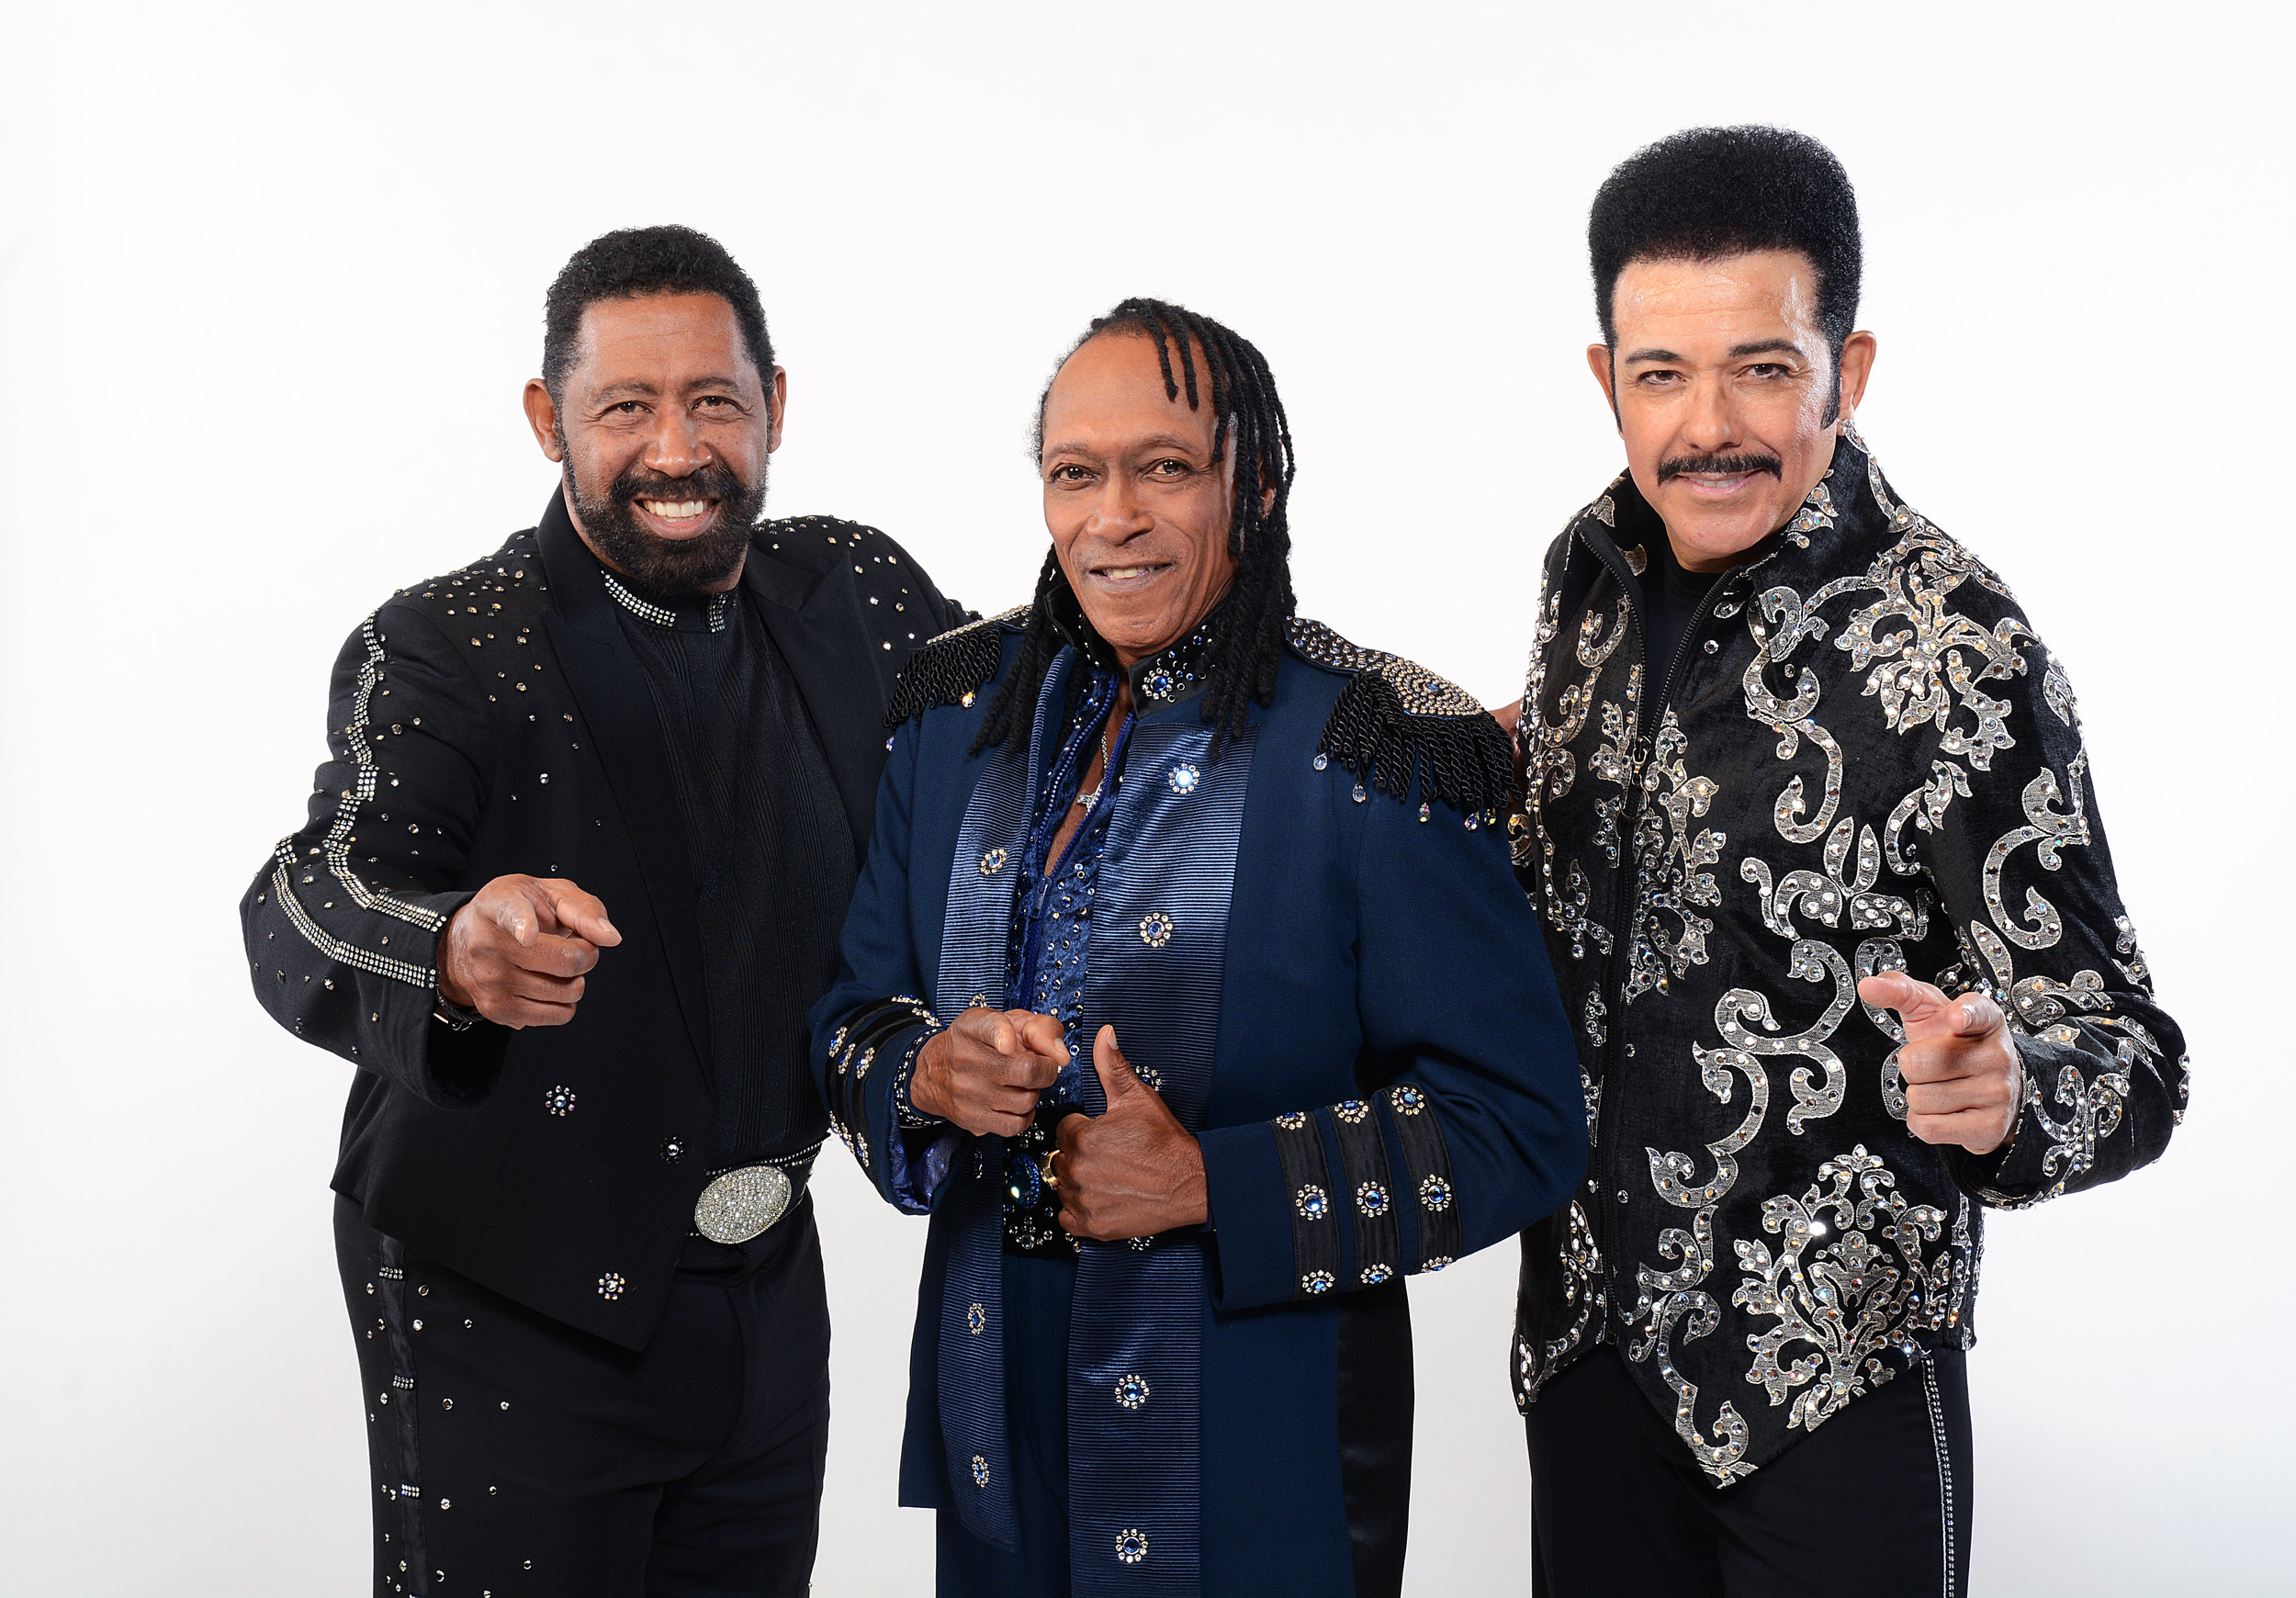 111415_DSC_0455_Commodores+copy.jpg